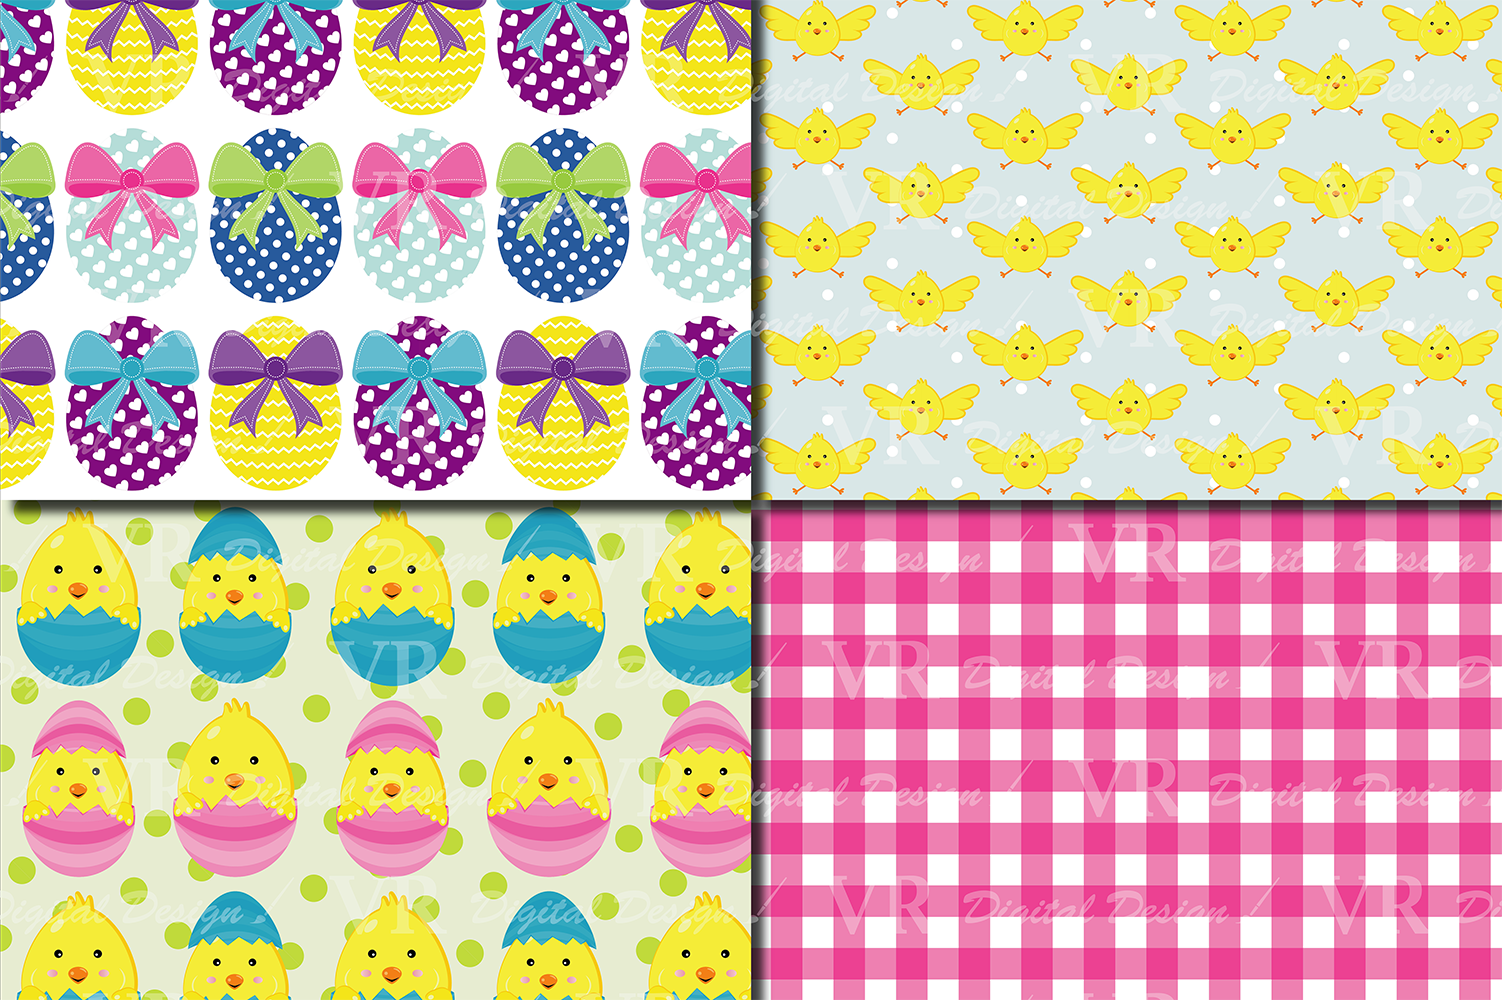 Bright Easter Digital Paper / Happy Easter chick and eggs backgrounds / Easter pattern / Scrapbooking paper example image 5